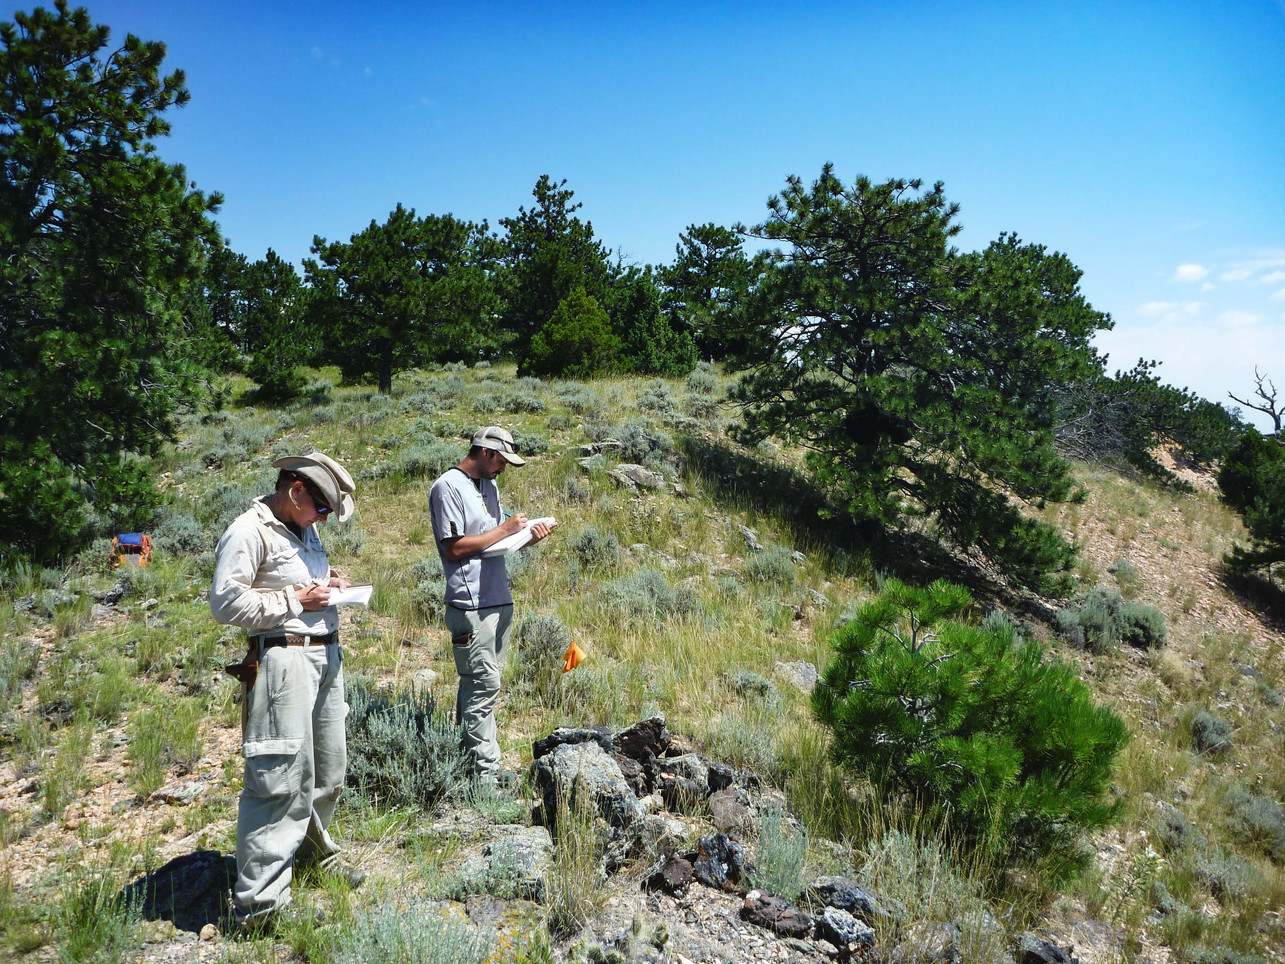 Documenting Native American hunting blind feature on ridge crest